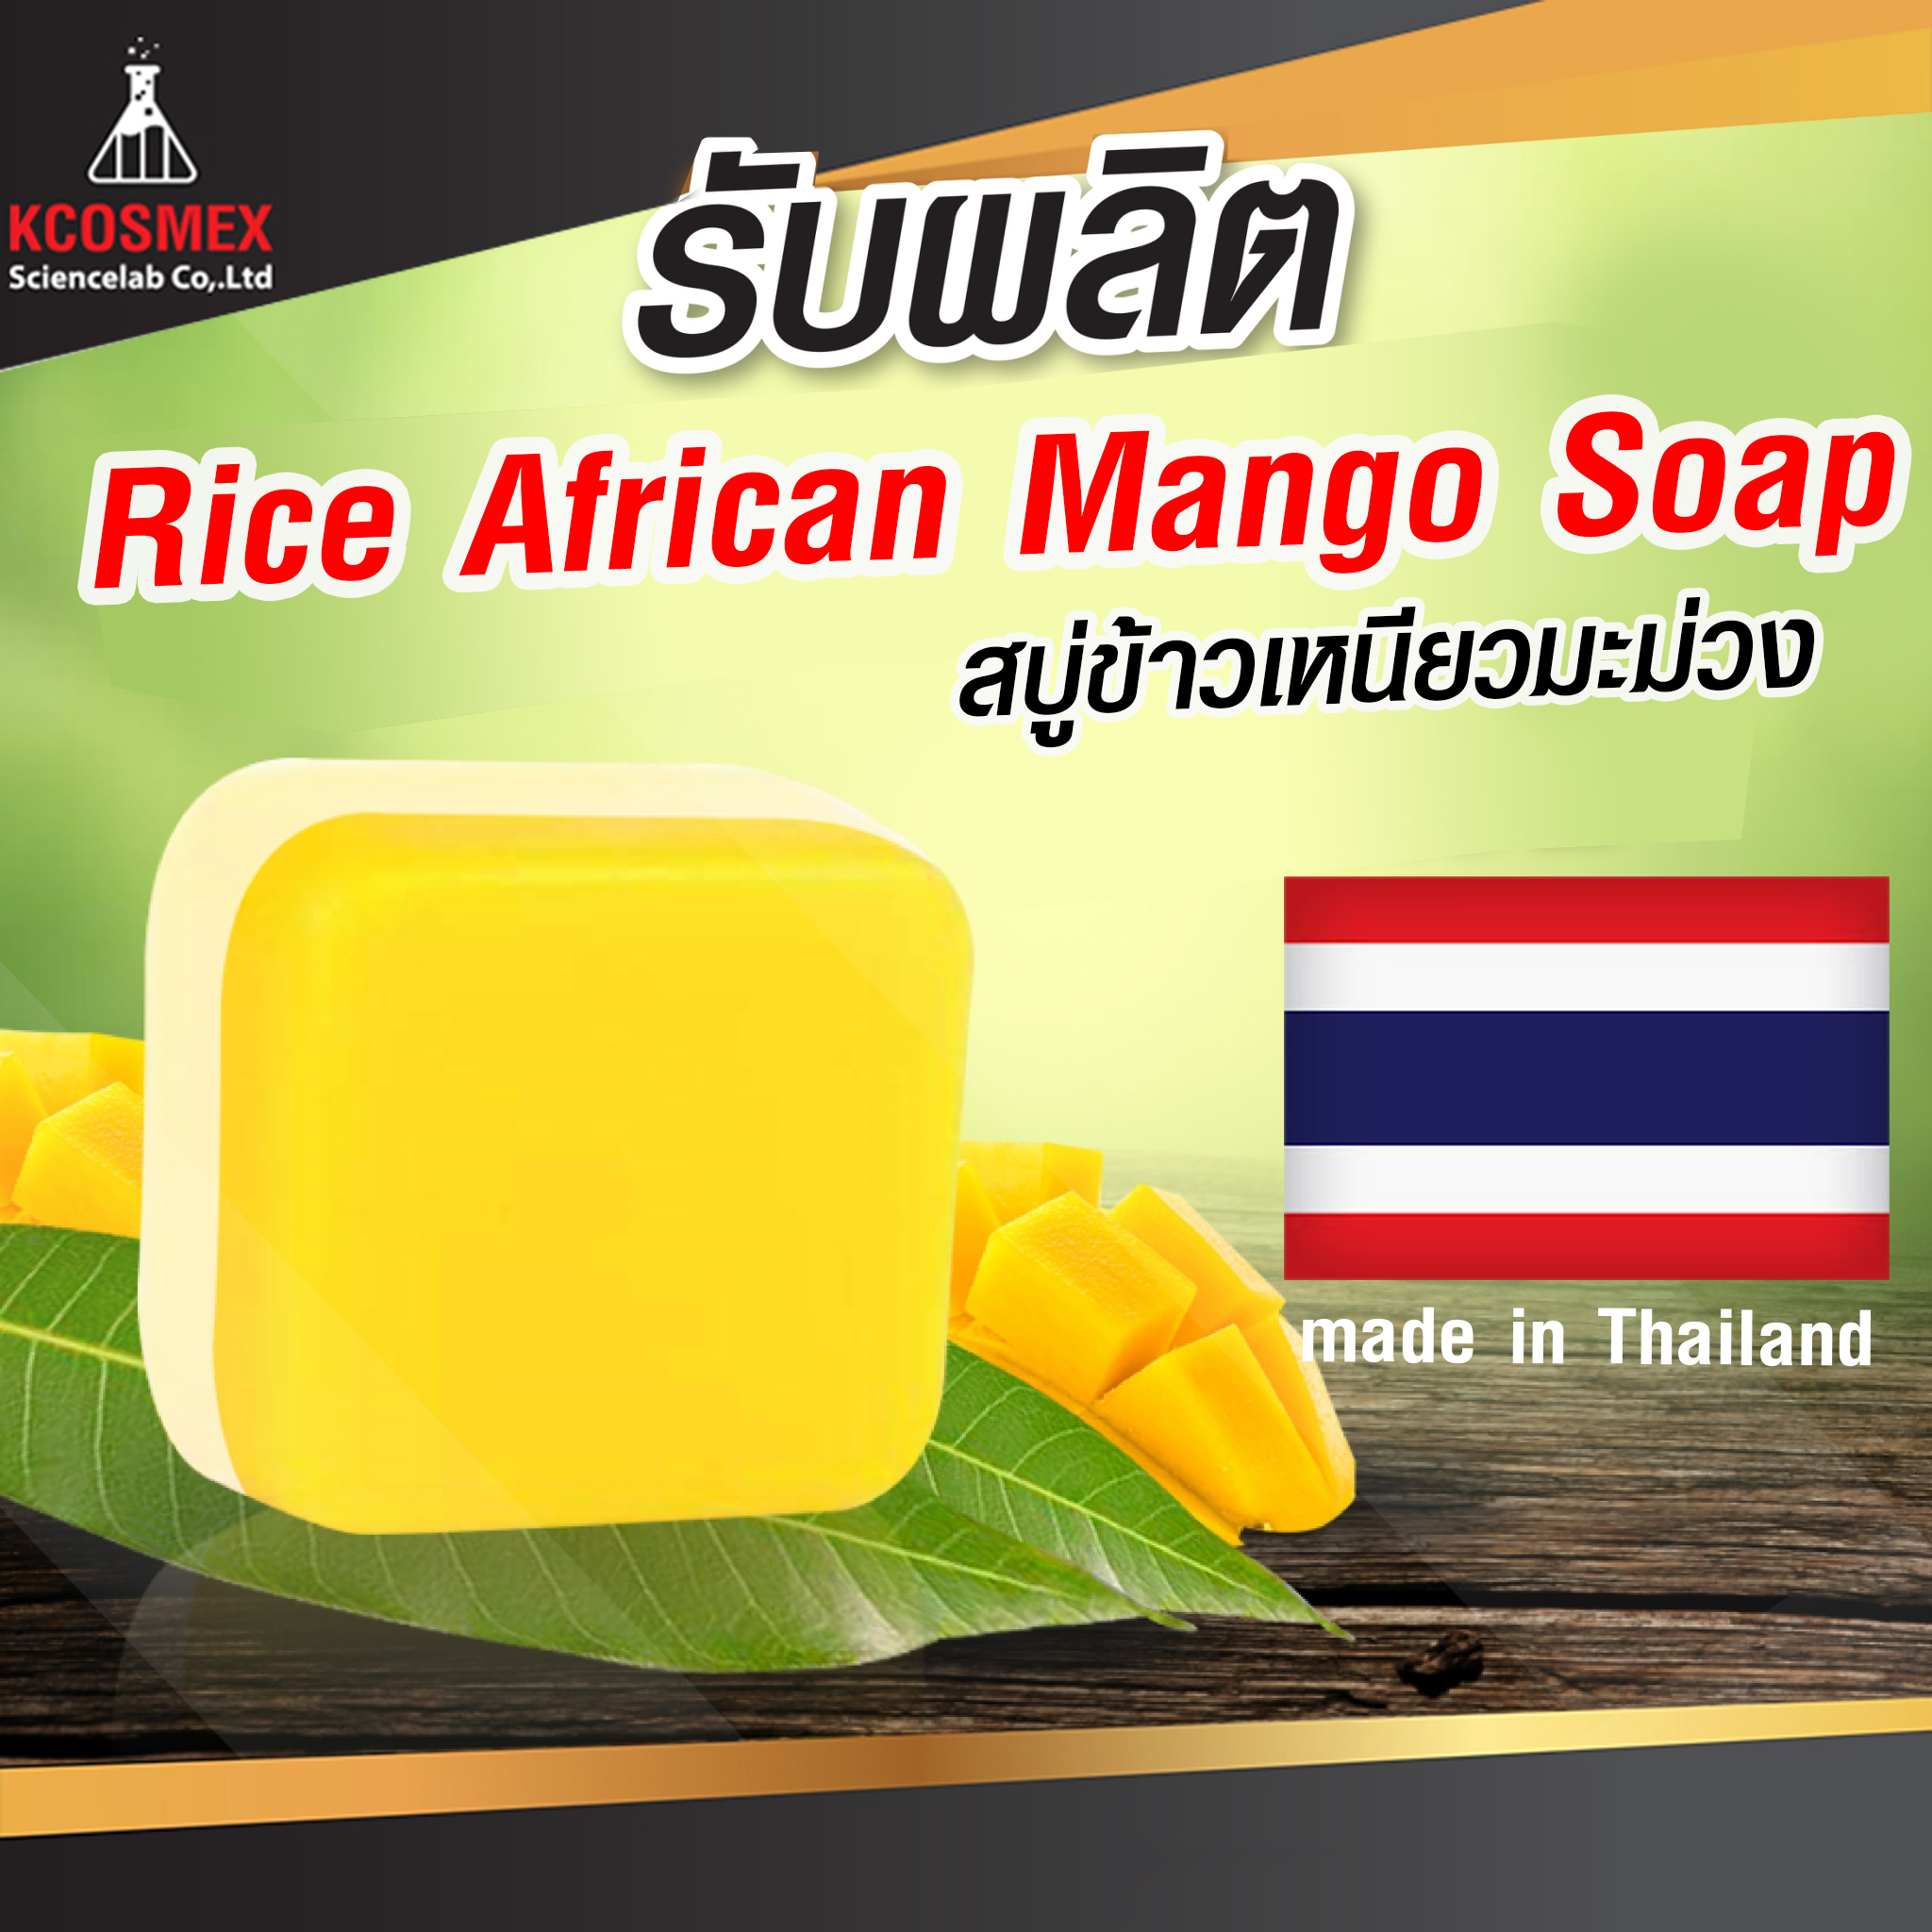 รับผลิต Rice African Mango Soap